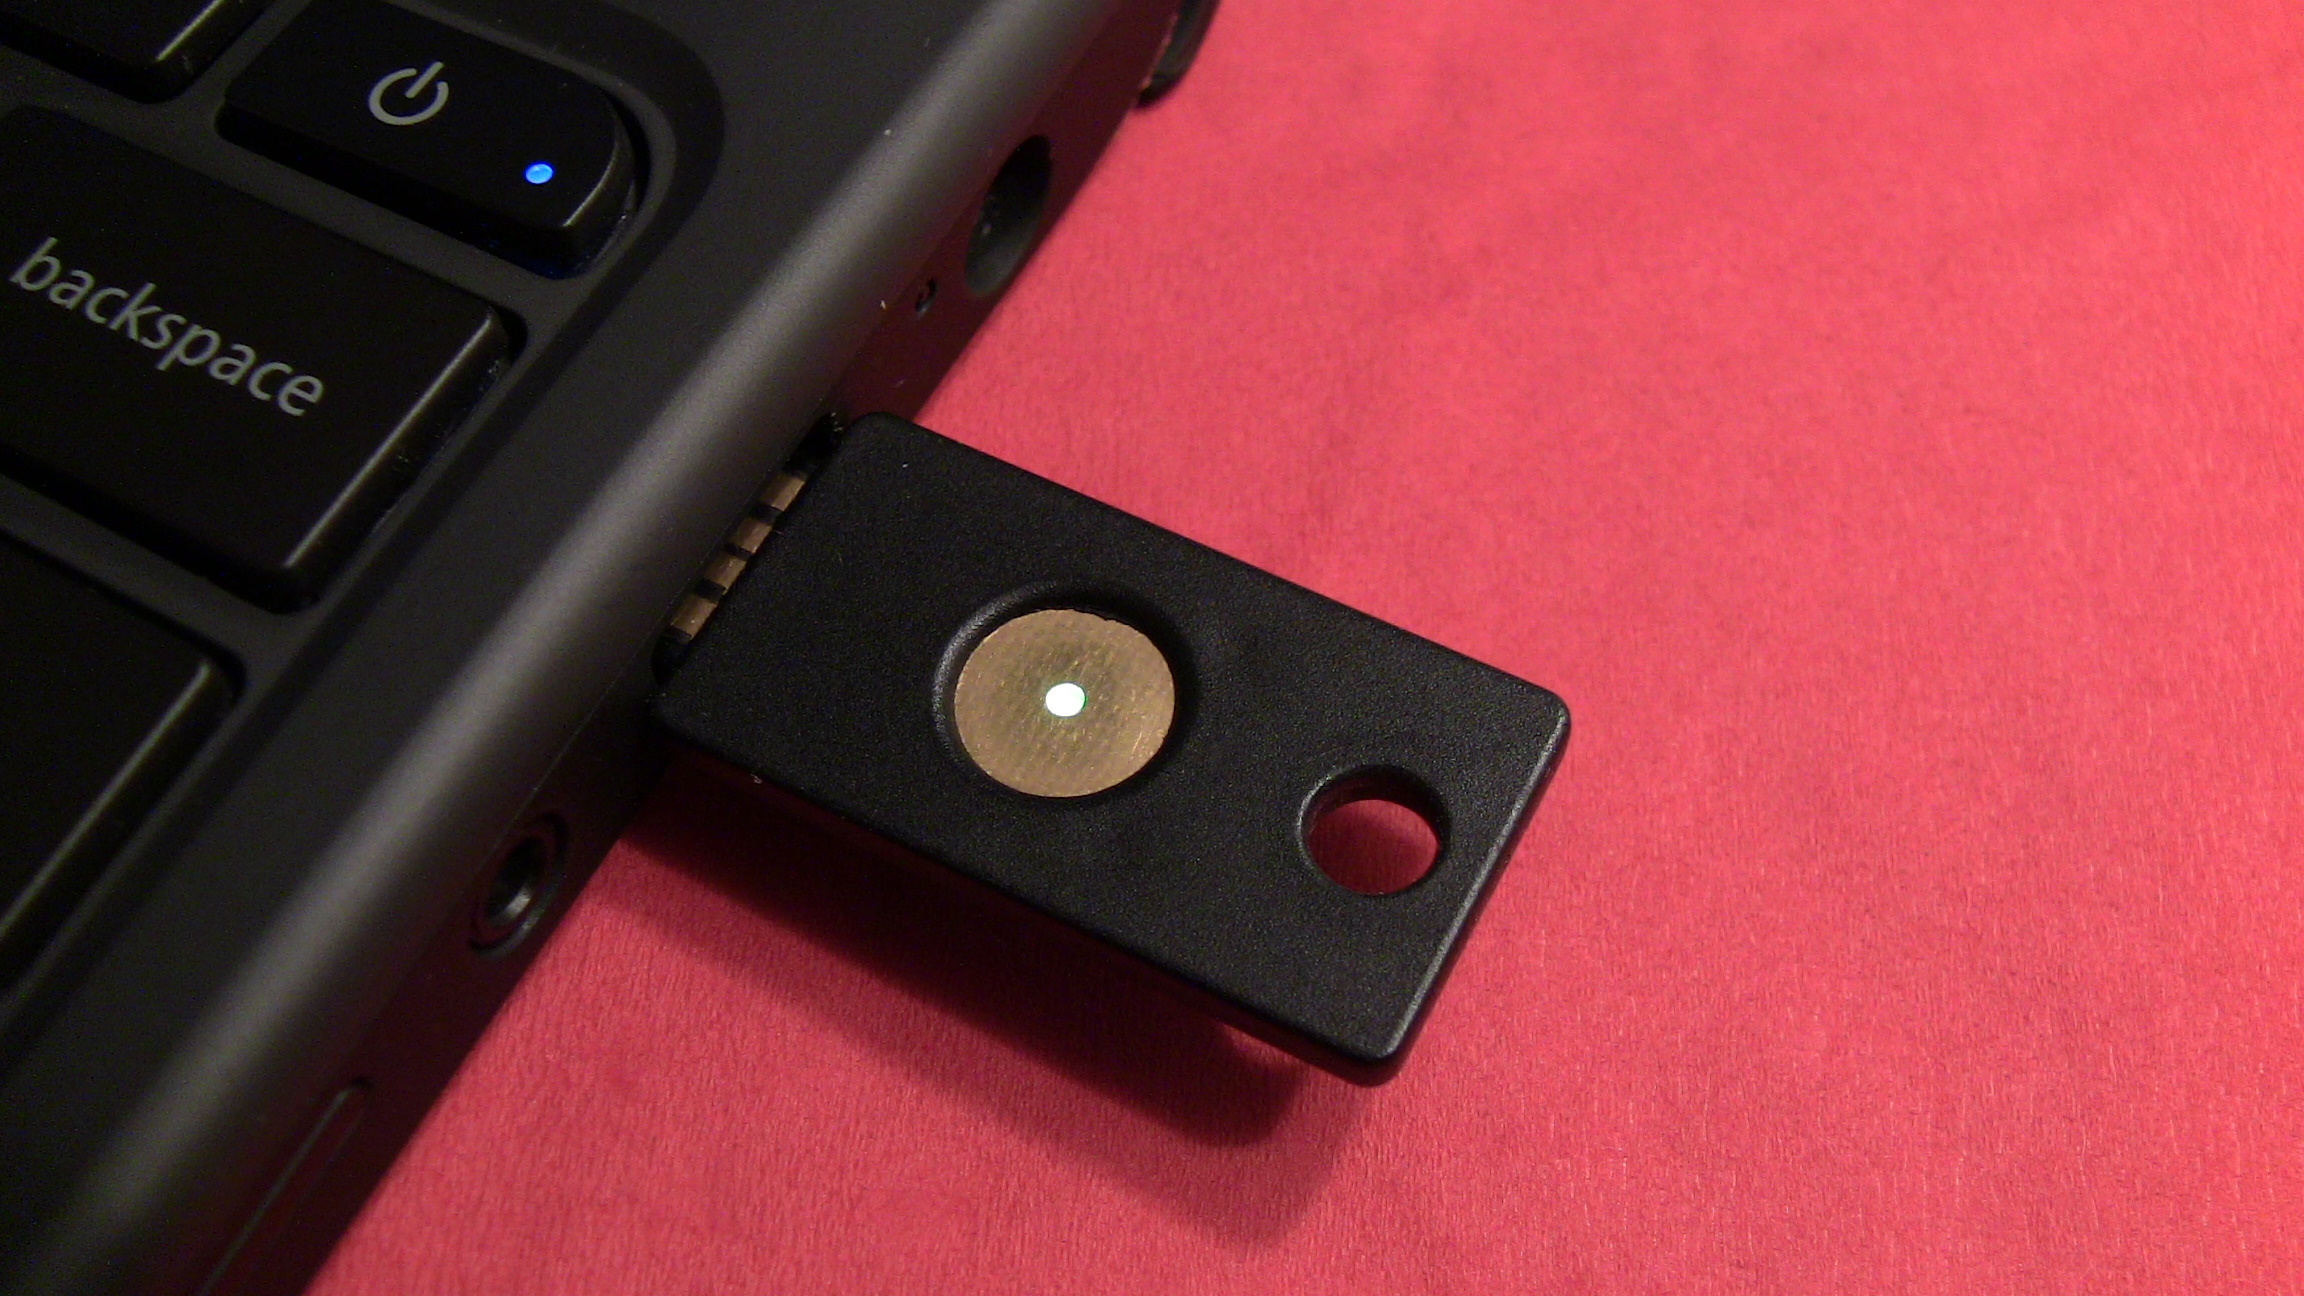 Yubikey in the Cr-48